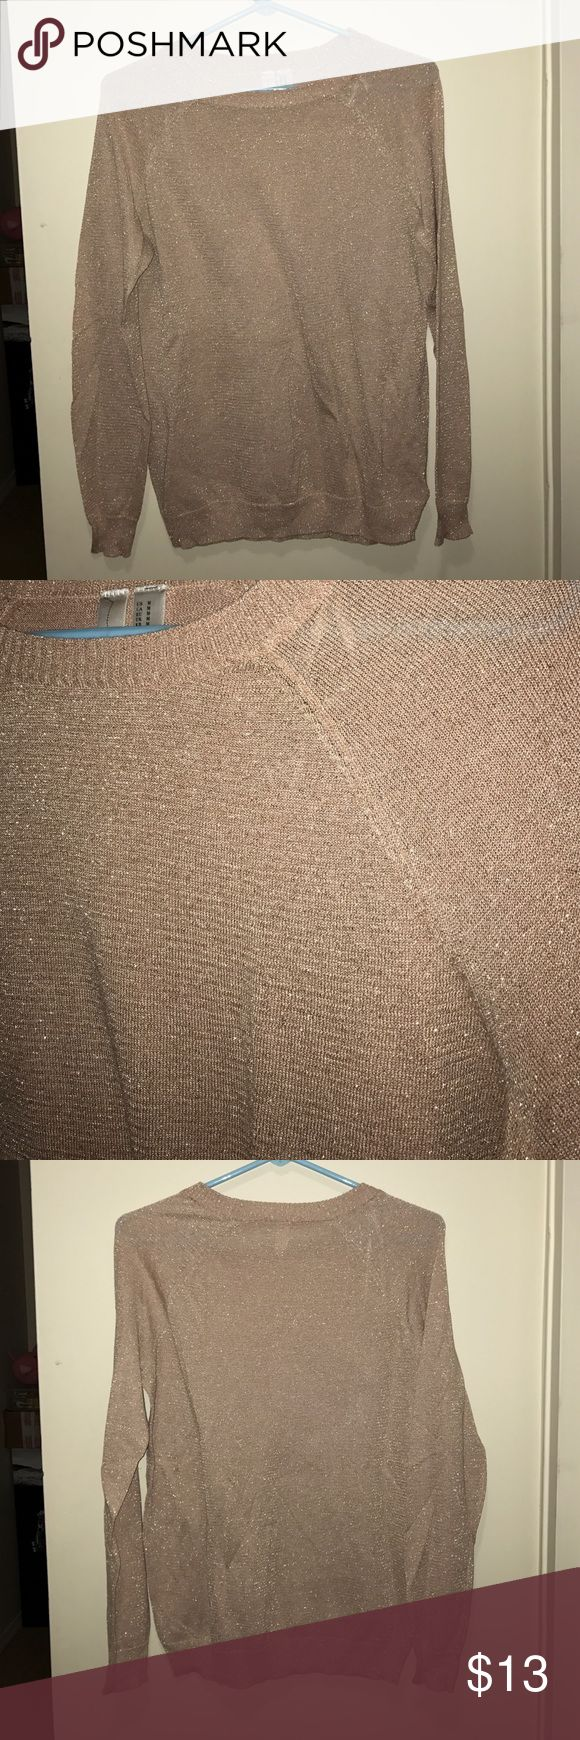 Gorgeous tan top with hints of gold Long sleeve top tan with hints of gold great condition 76% viscose 15% polyester 8% metallic Forever 21 Sweaters